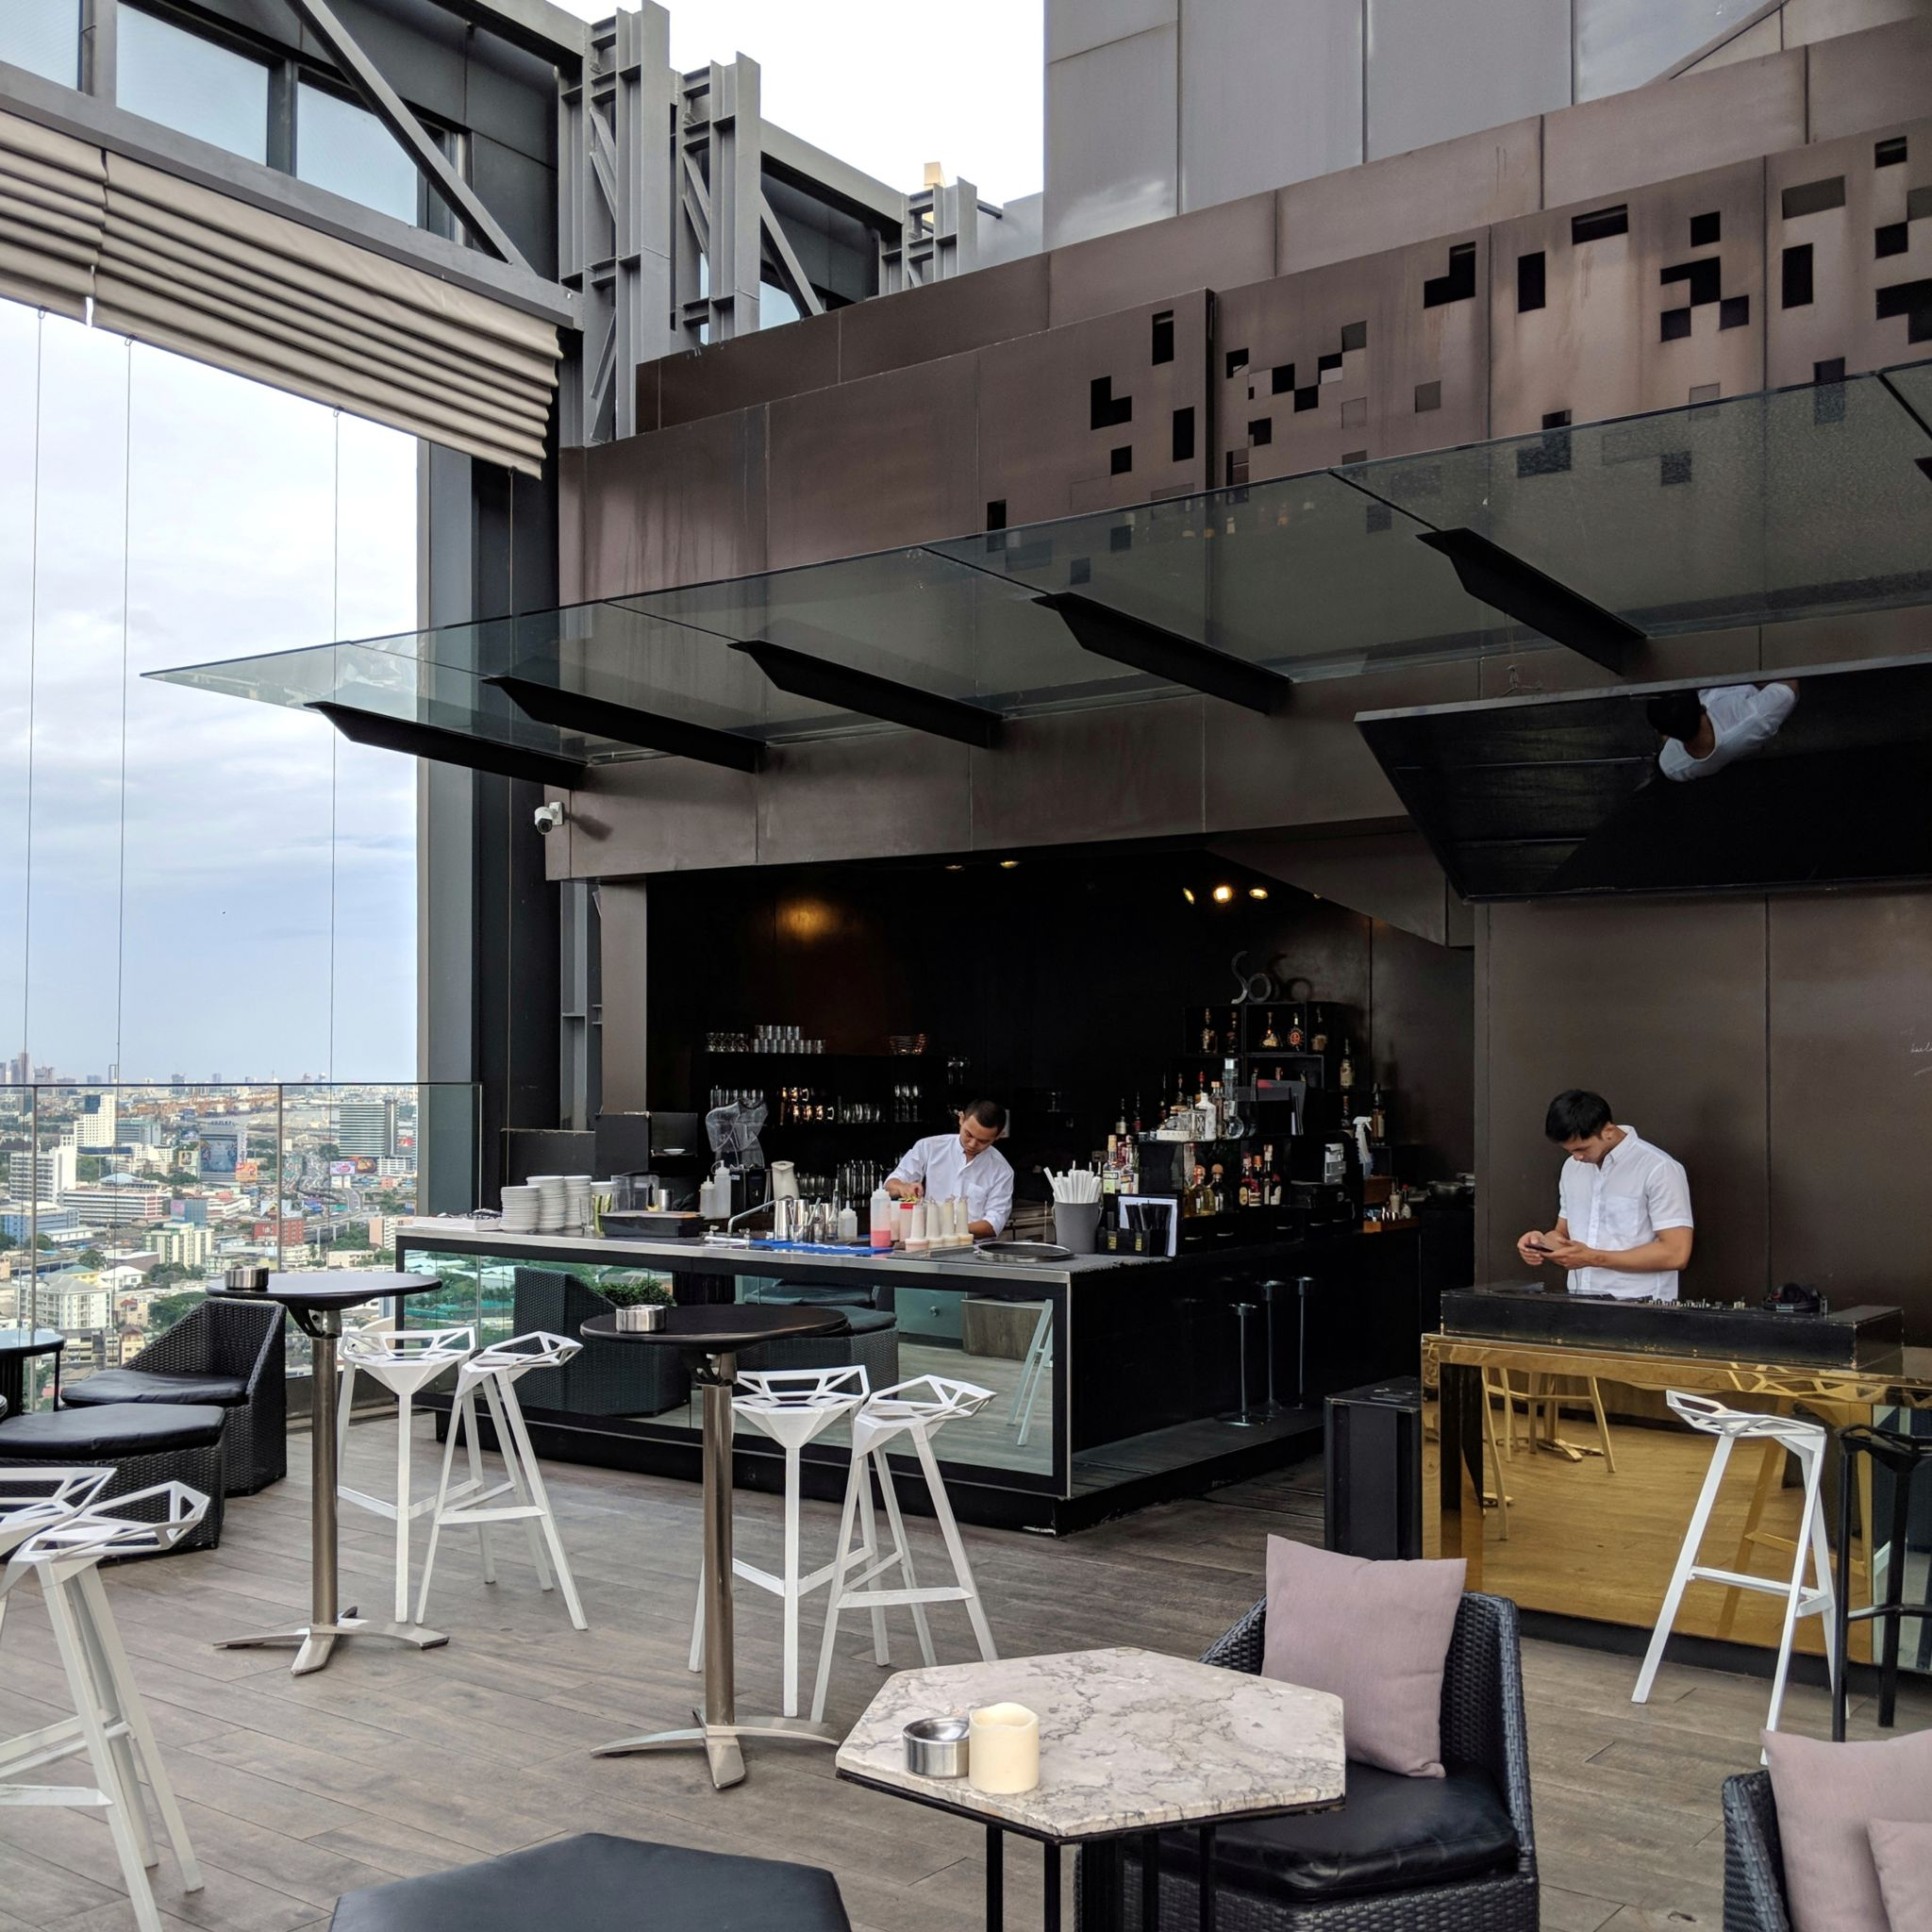 so sofitel bangkok hi-so rooftop bar